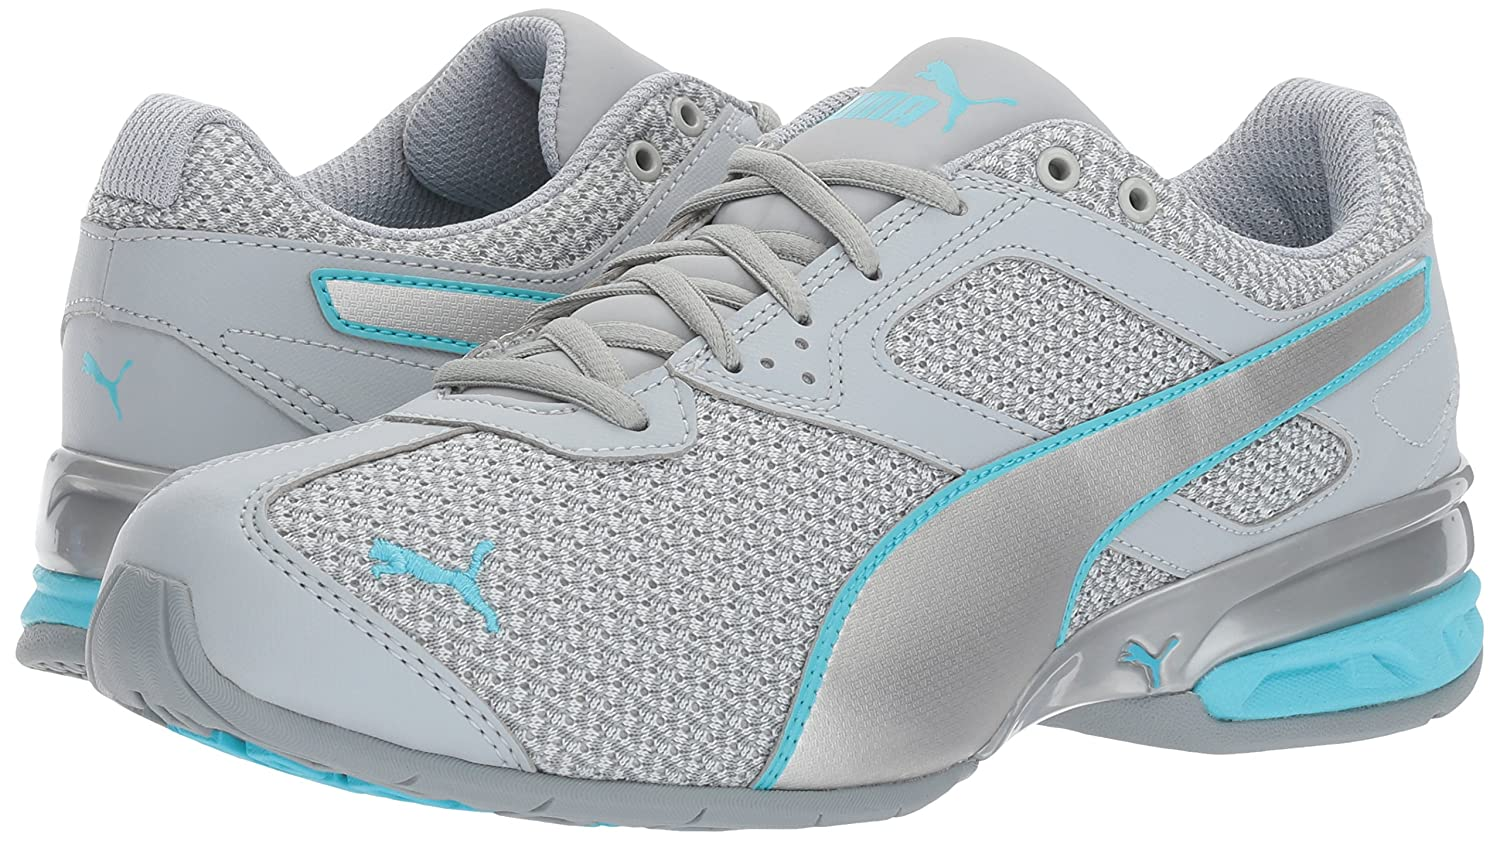 PUMA Women's Tazon 6 Knit Wn US|Quarry-puma Sneaker B01N0SKI8H 8 B(M) US|Quarry-puma Wn Silver-nrgy Turquoise 267c3c